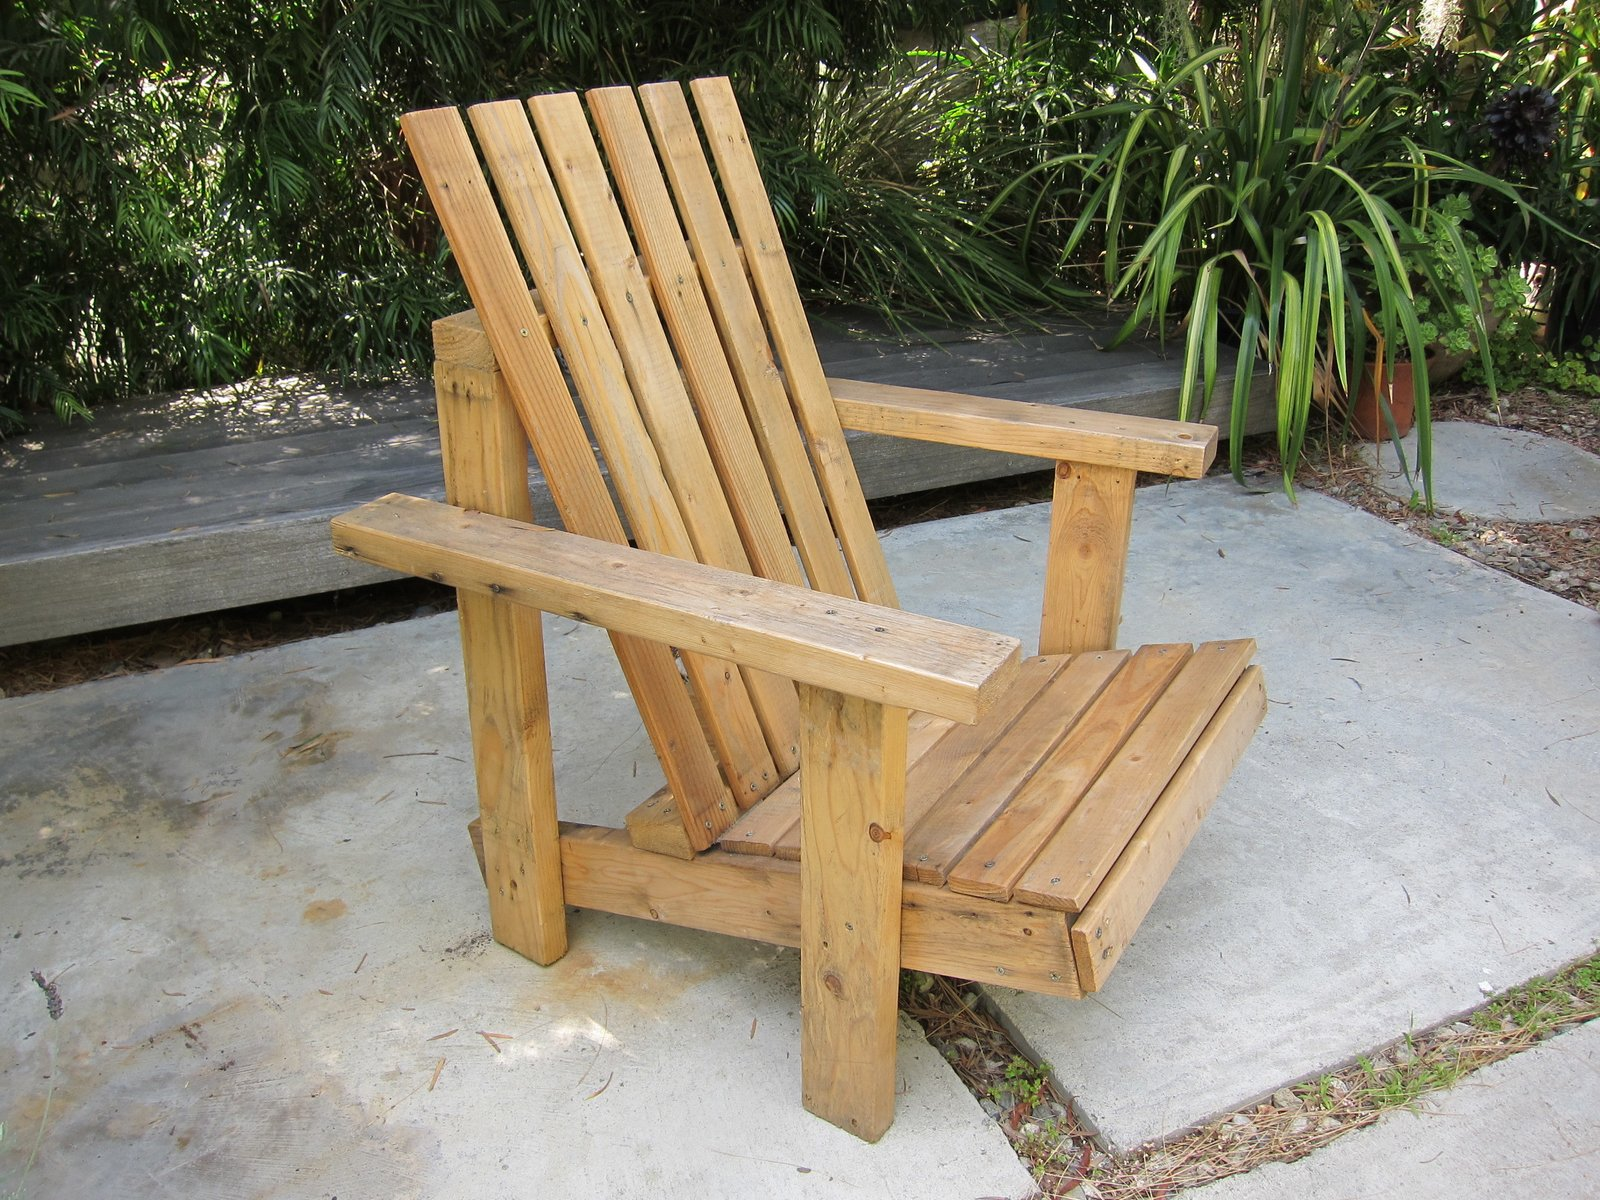 it took me about 4 hours to design and assemble this out of a palette someone left in the alley behind my house in Venice Beach. I had no plan and I only used an old saw and a screw-driver. I even recycled the screws from the pallete.   Best Photos from Adirondack chair I made from a pallet